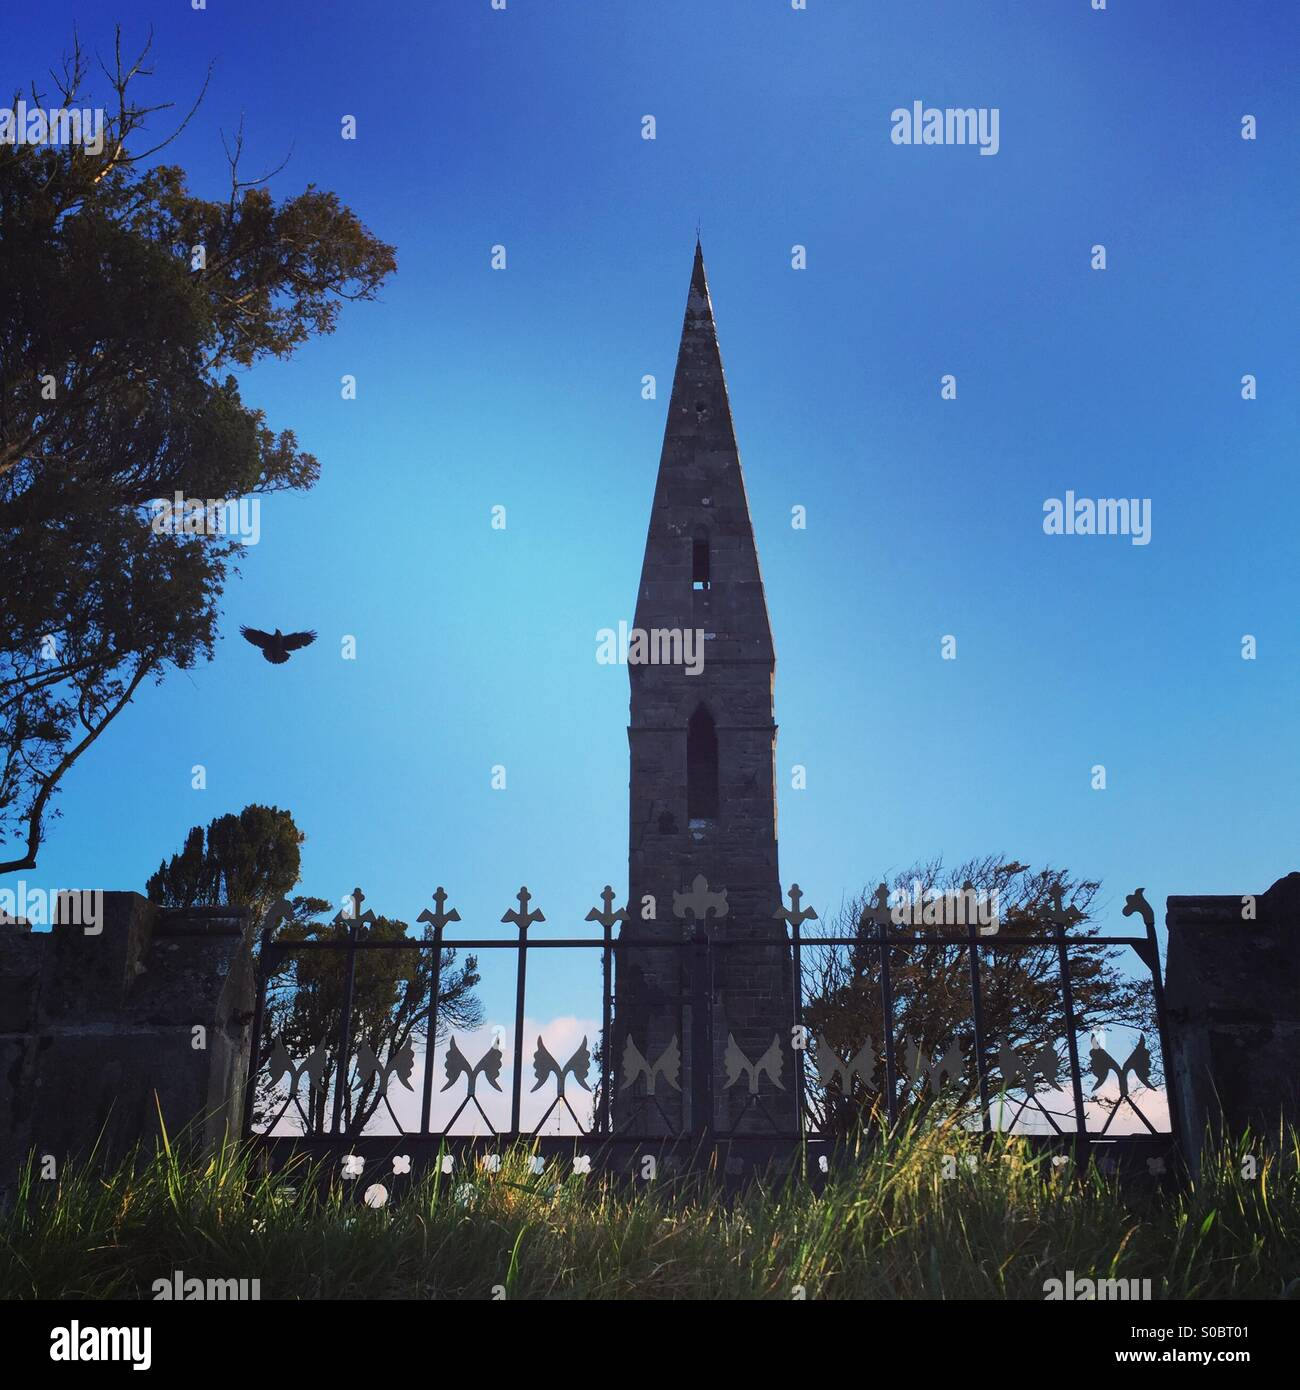 A crow flies by an old church spire in Balla, - Stock Image